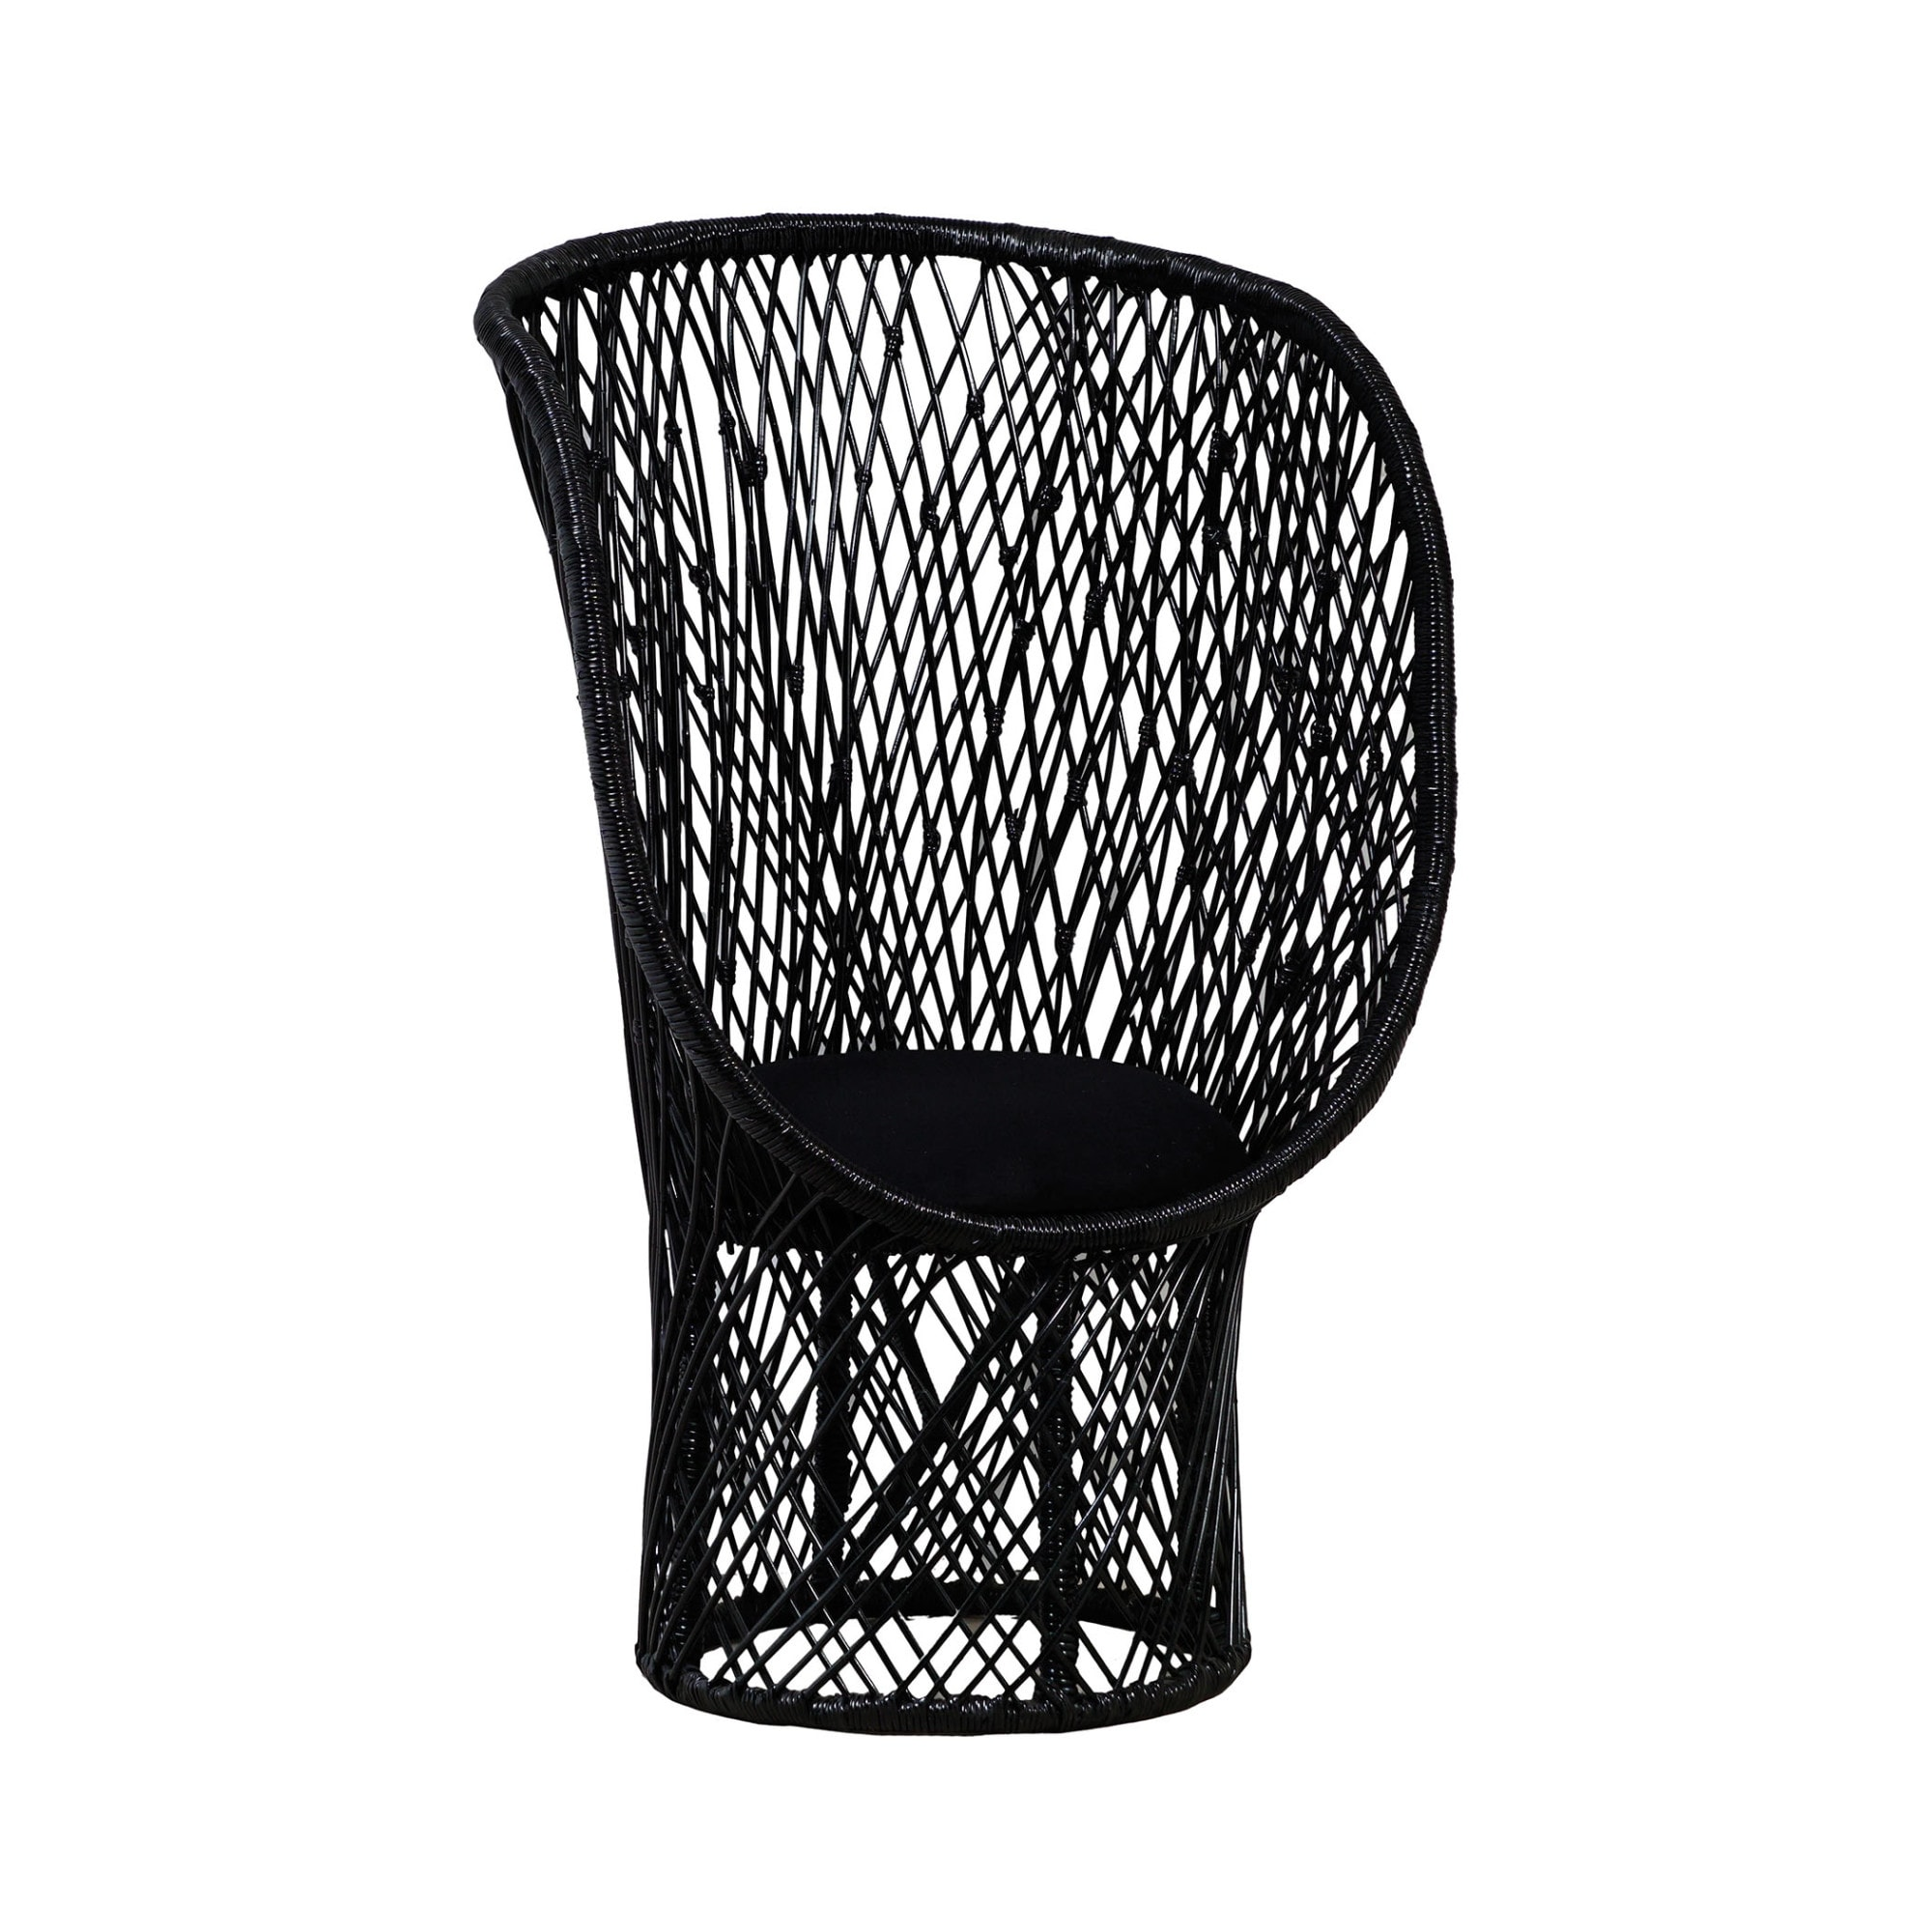 Rattan Accent Chair Dimond Home 7011 1504 Victoria 32